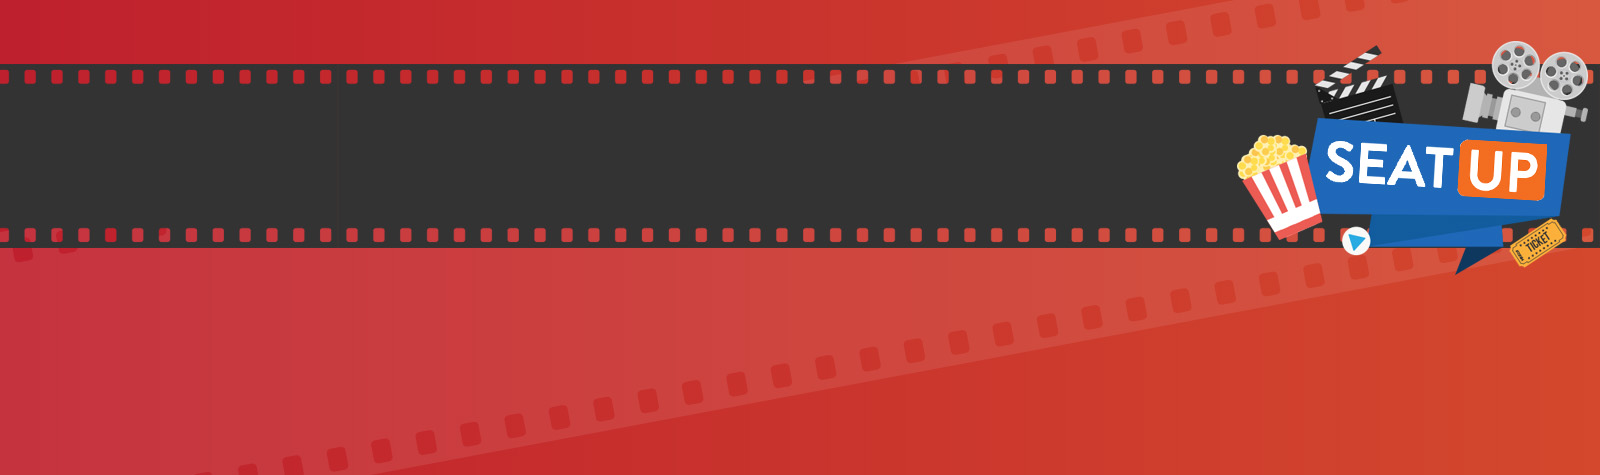 50 Greatest Online Resources for Movieholics